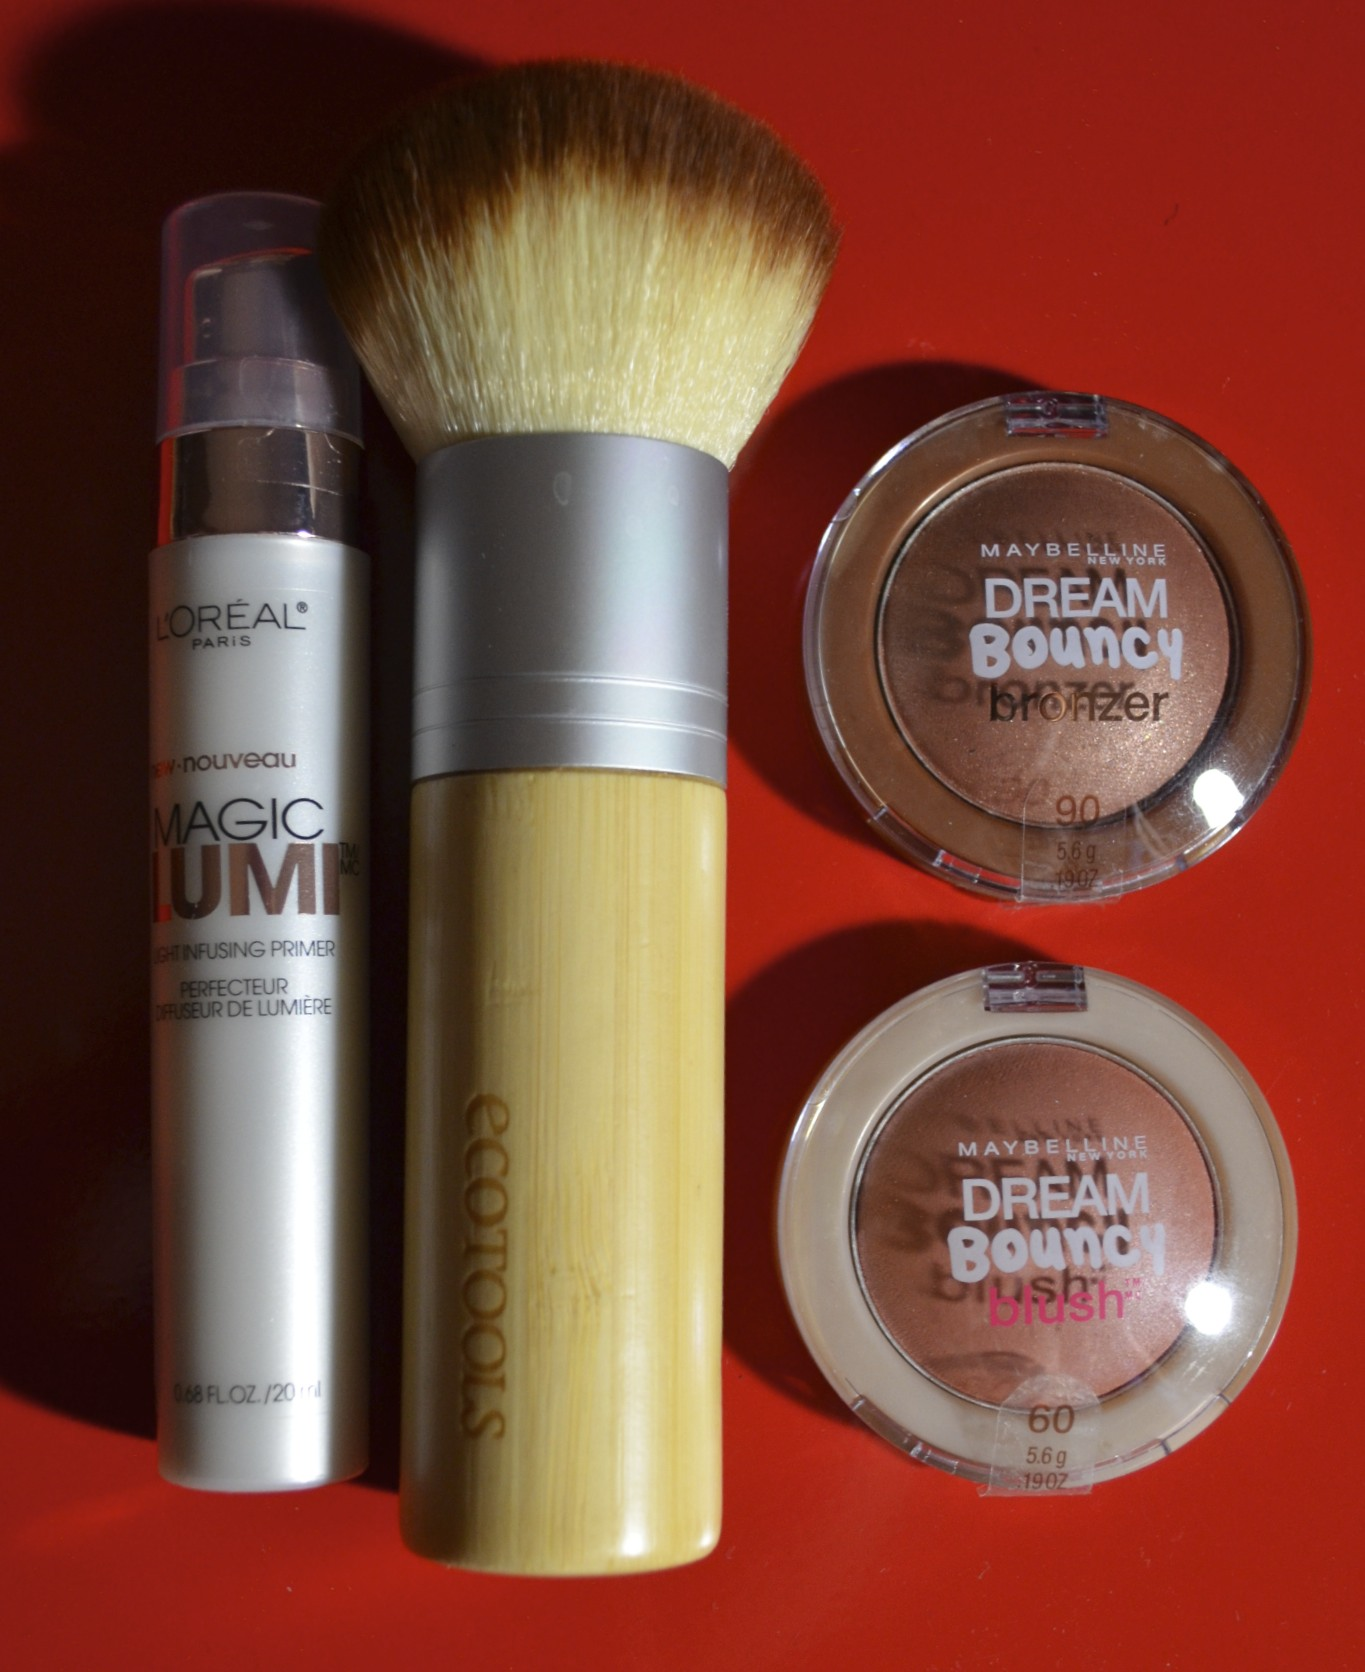 L'Oreal Magic Lumi Primer, Ecotools Bamboo Bronzer Blush, Maybelline Dream Bouncy Bronzer Sun Glow, Dream Bouncy blush Coffee Cake